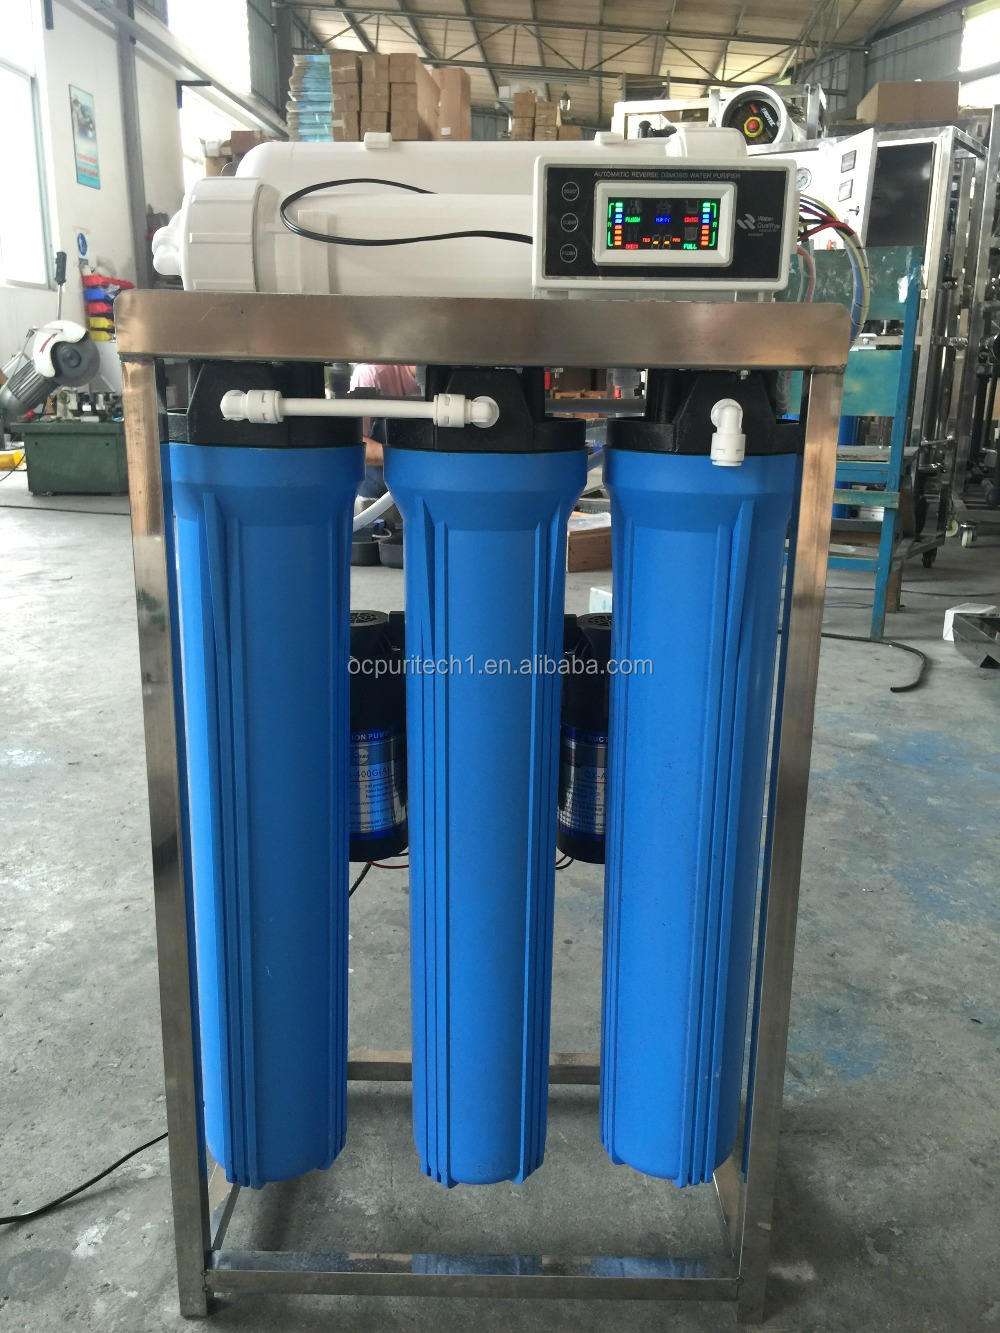 China supplier commercial reverse osmosis machine 500 gpd ro system